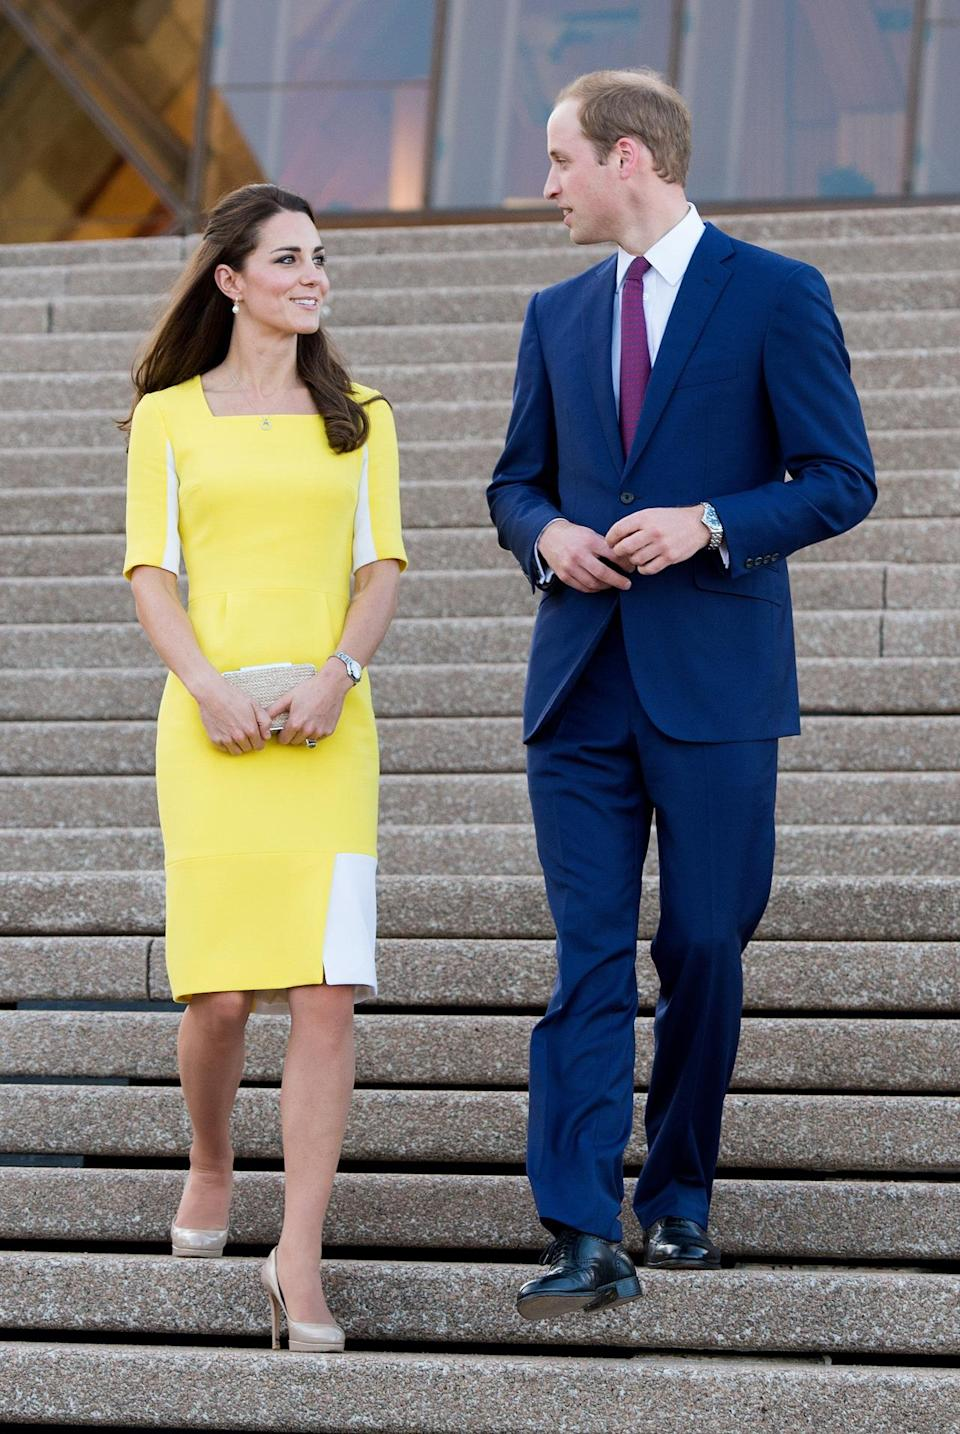 <p>112. April 16, 2014<br>The Duchess wore a lemon dress by Roksanda Ilincic for a trip to the Sydney Opera House. She accessorised with her trusty nude heels and clutch - both from L.K. Bennett. </p><p><i>[Photo: PA]</i></p>